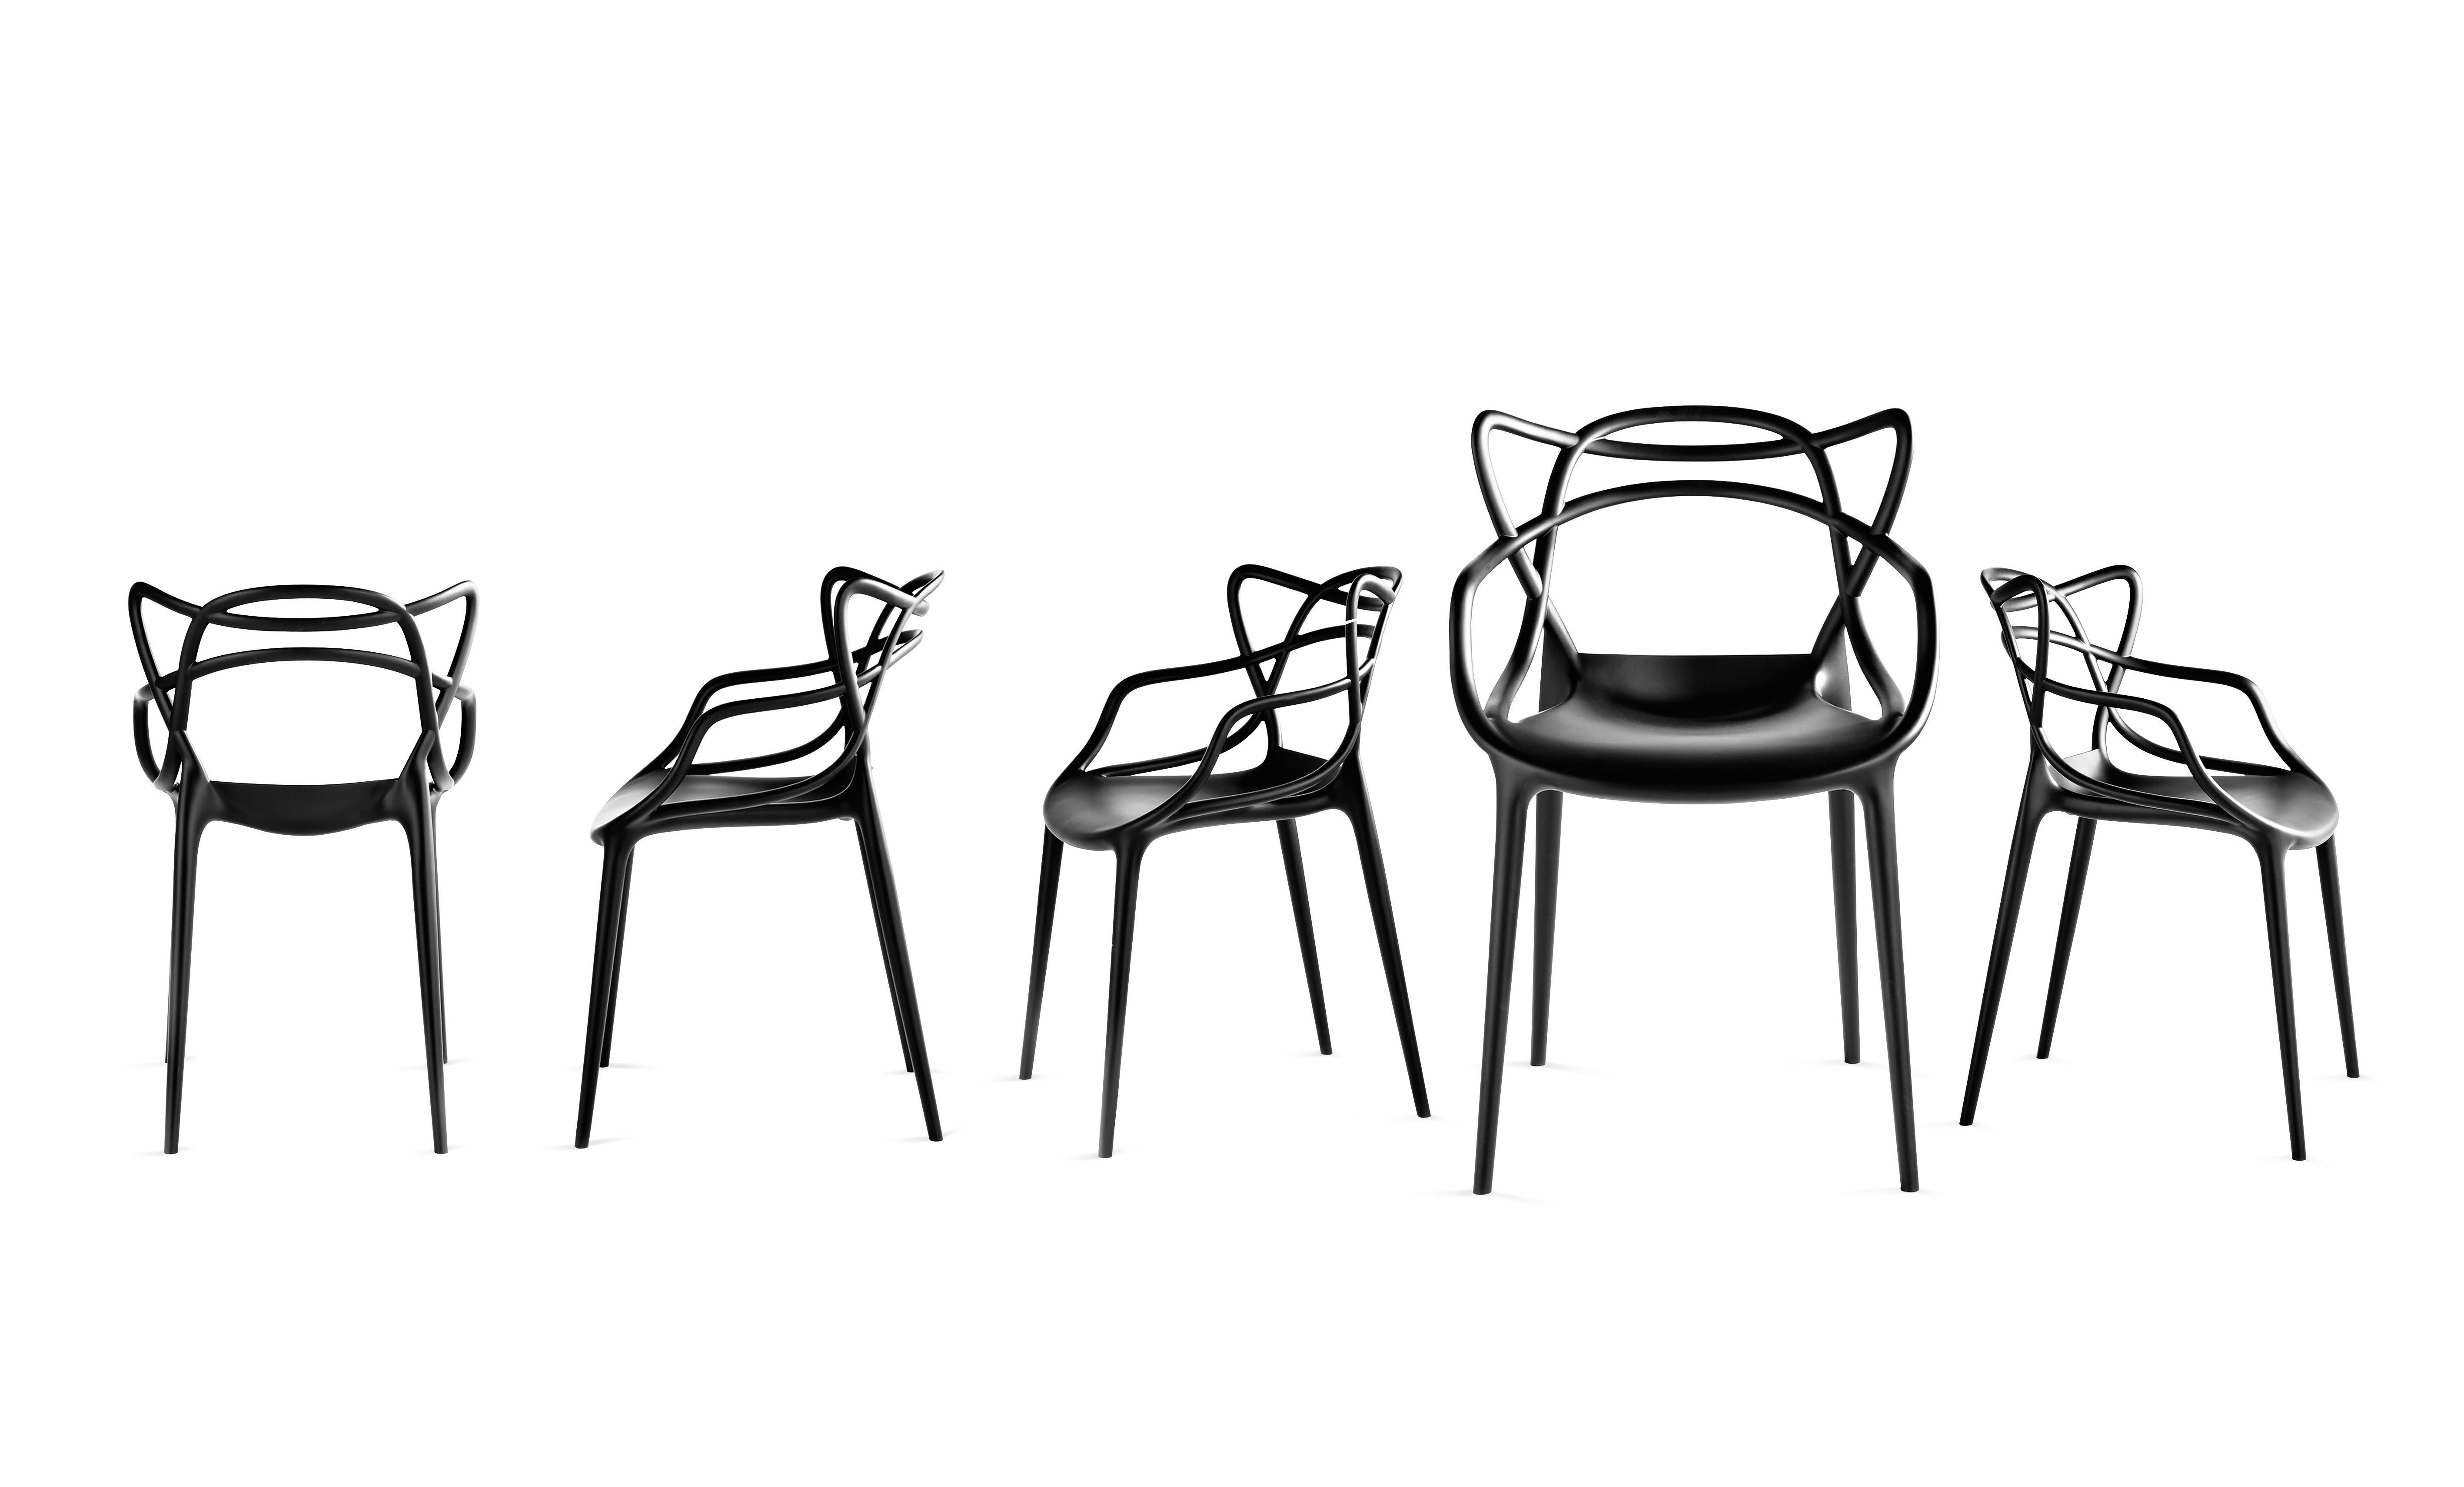 fauteuil masters kartell plastique noir | made in design - Chaises Philippe Starck Kartell